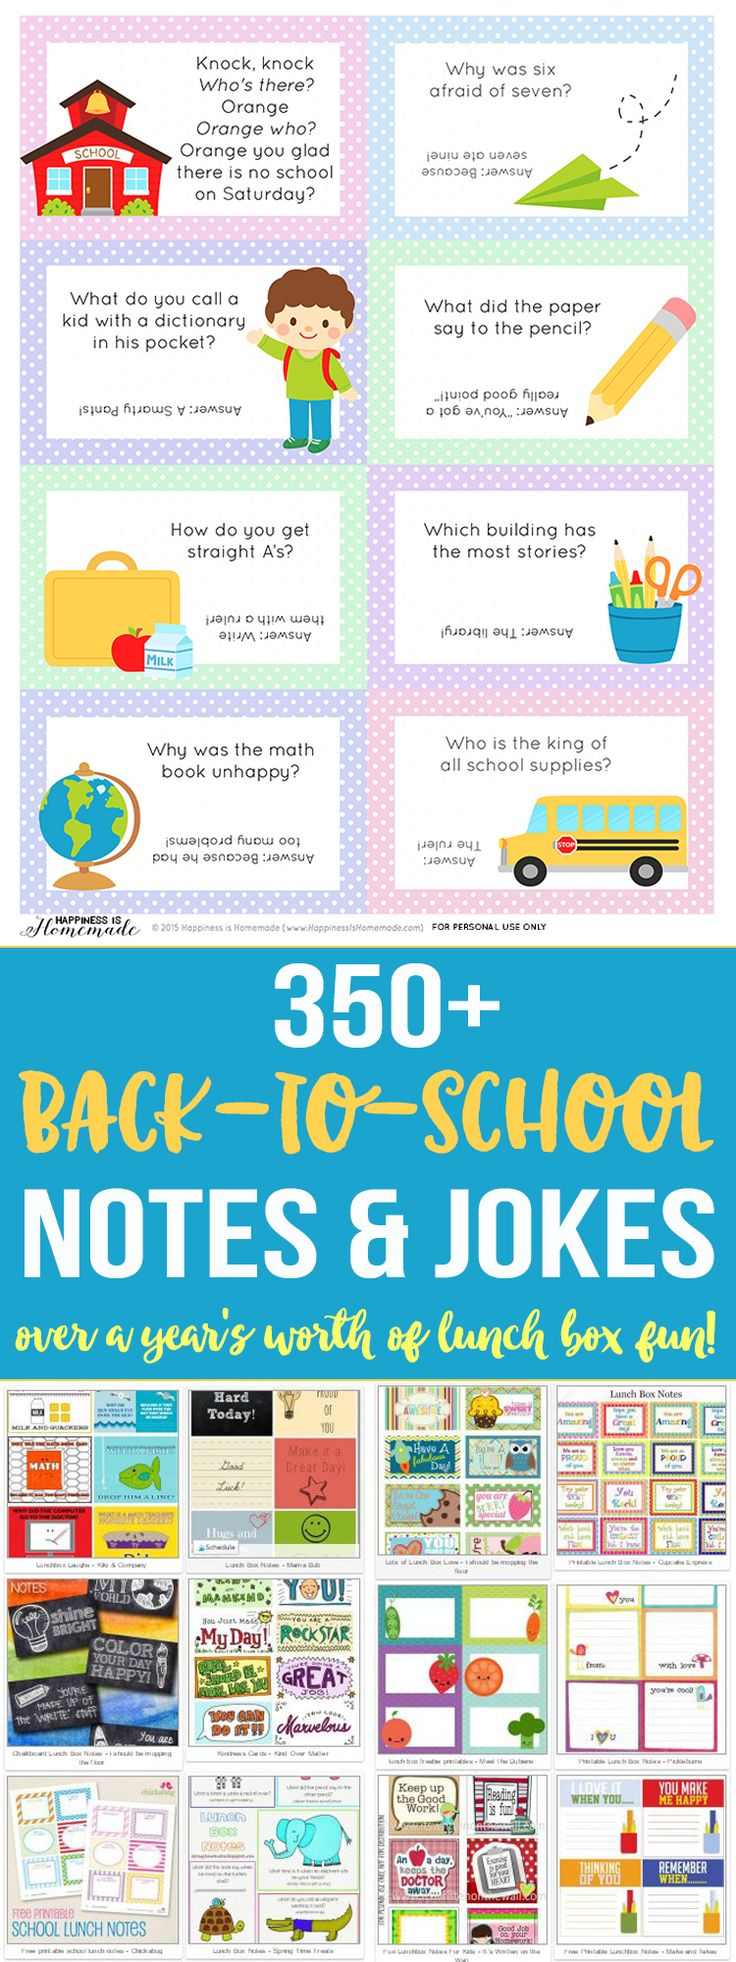 Back-to-School Lunch Box Jokes & Notes // Notas y chistes para el almuerzo del cole